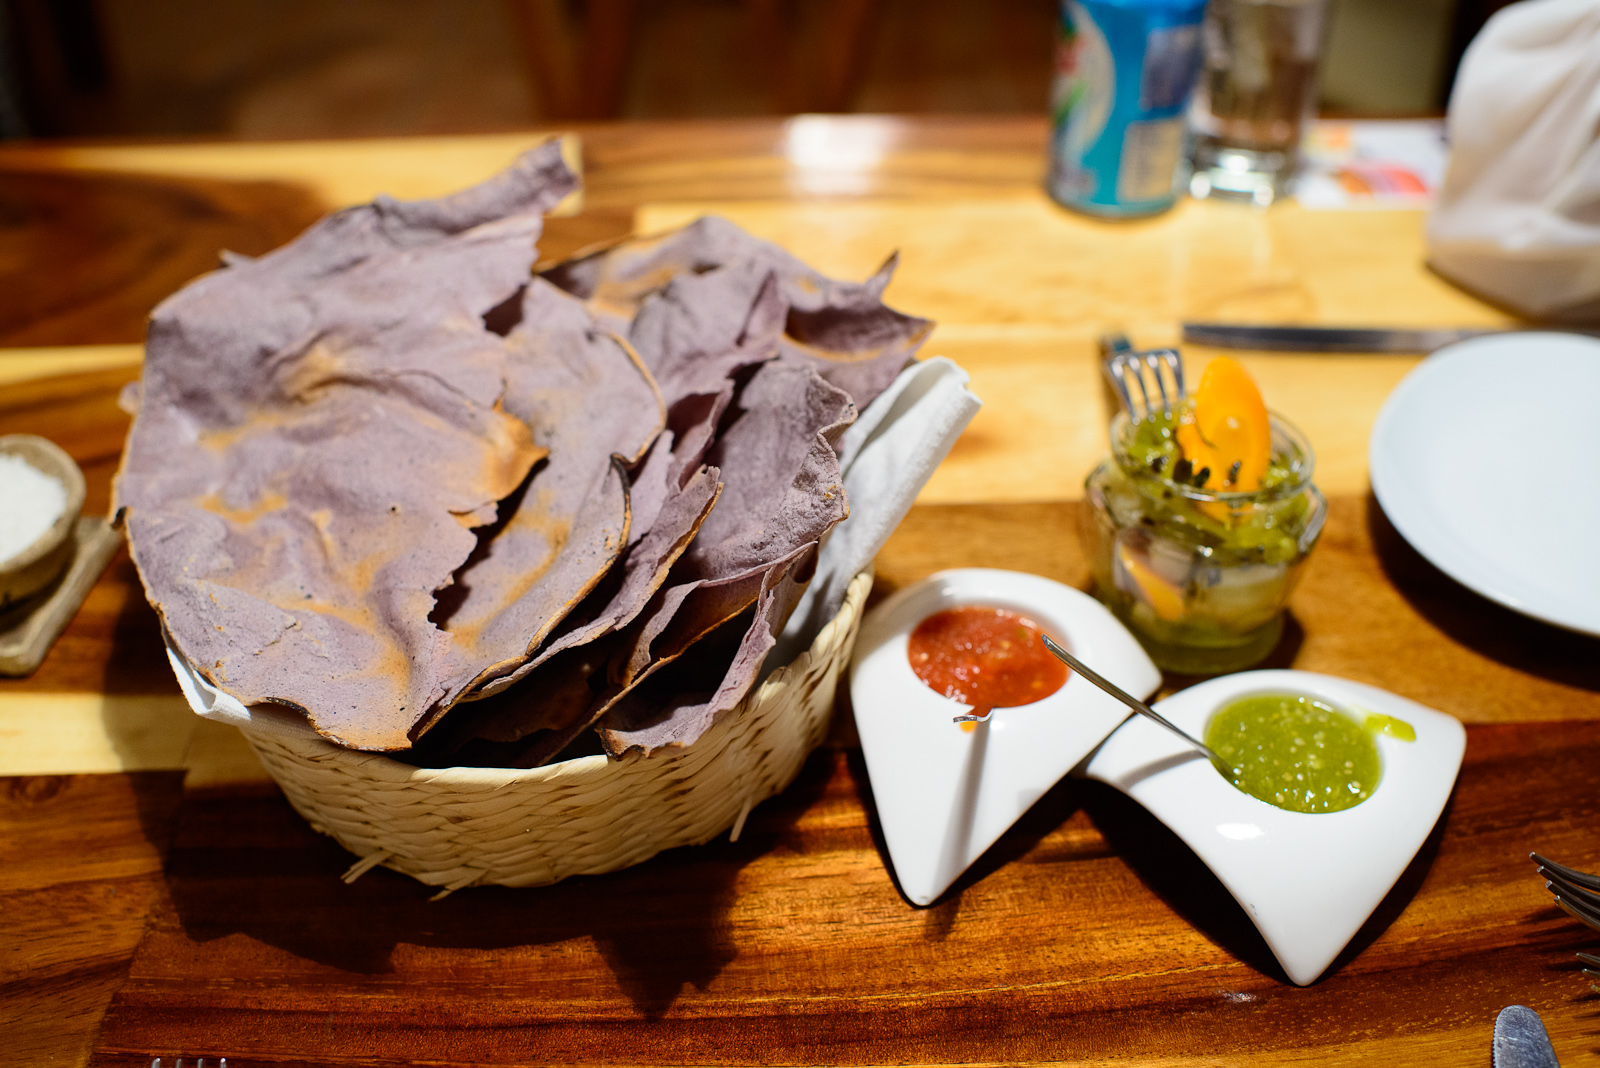 Blue corn totopos, red and green salsa